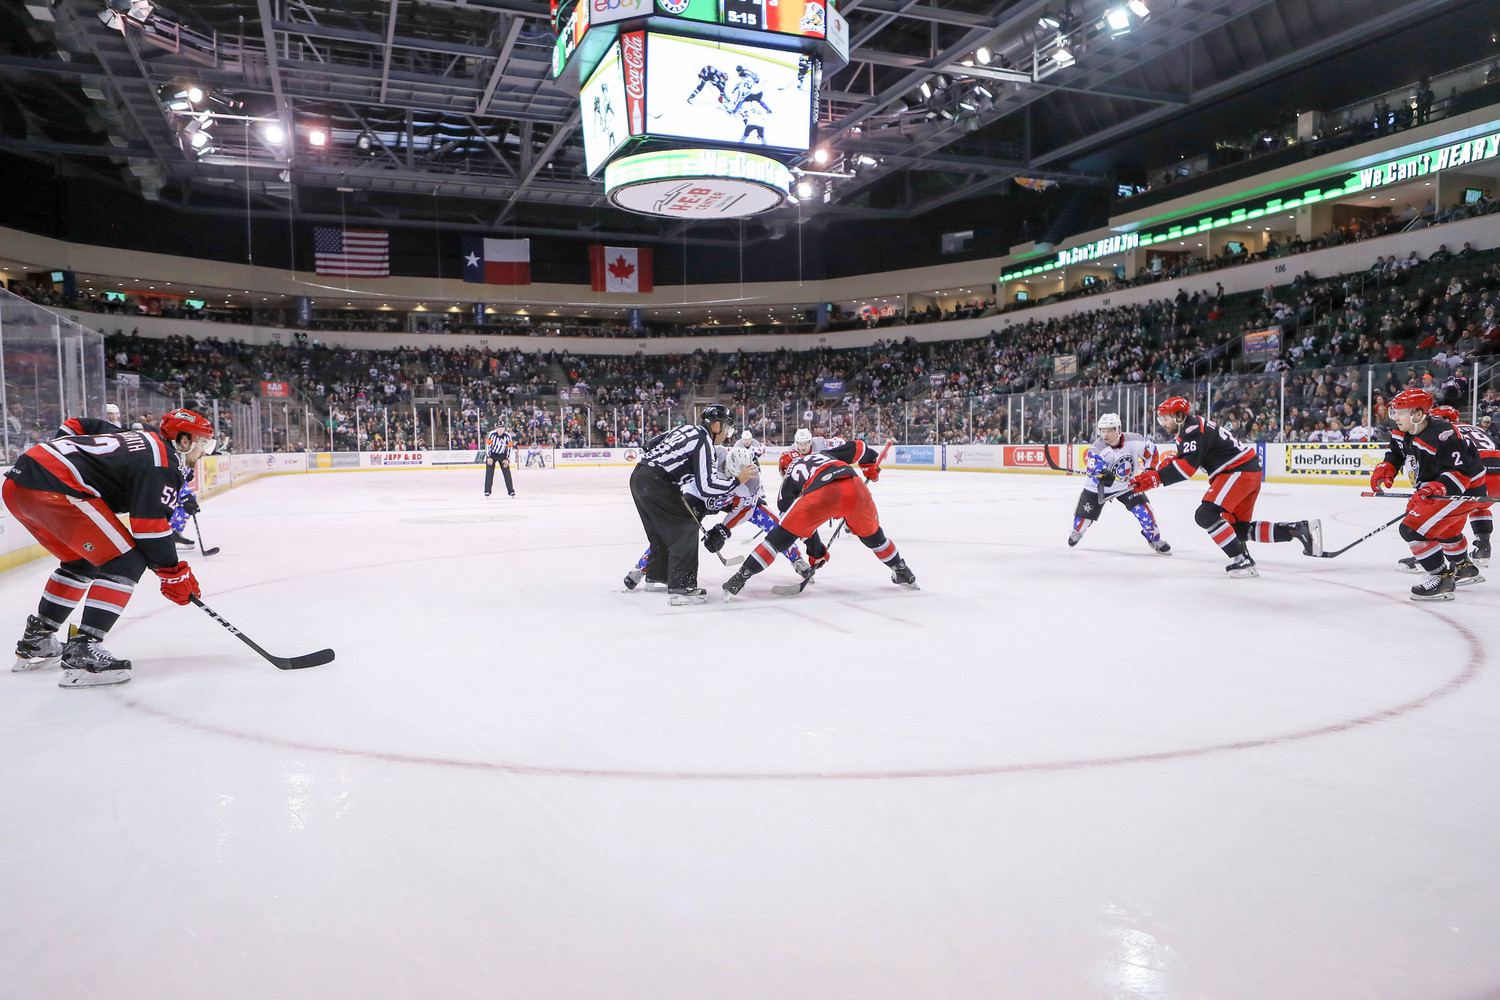 Texas Stars take on the Grand Rapids Griffins at the HEB Center in Cedar Park, Texas, on November 11, 2017.